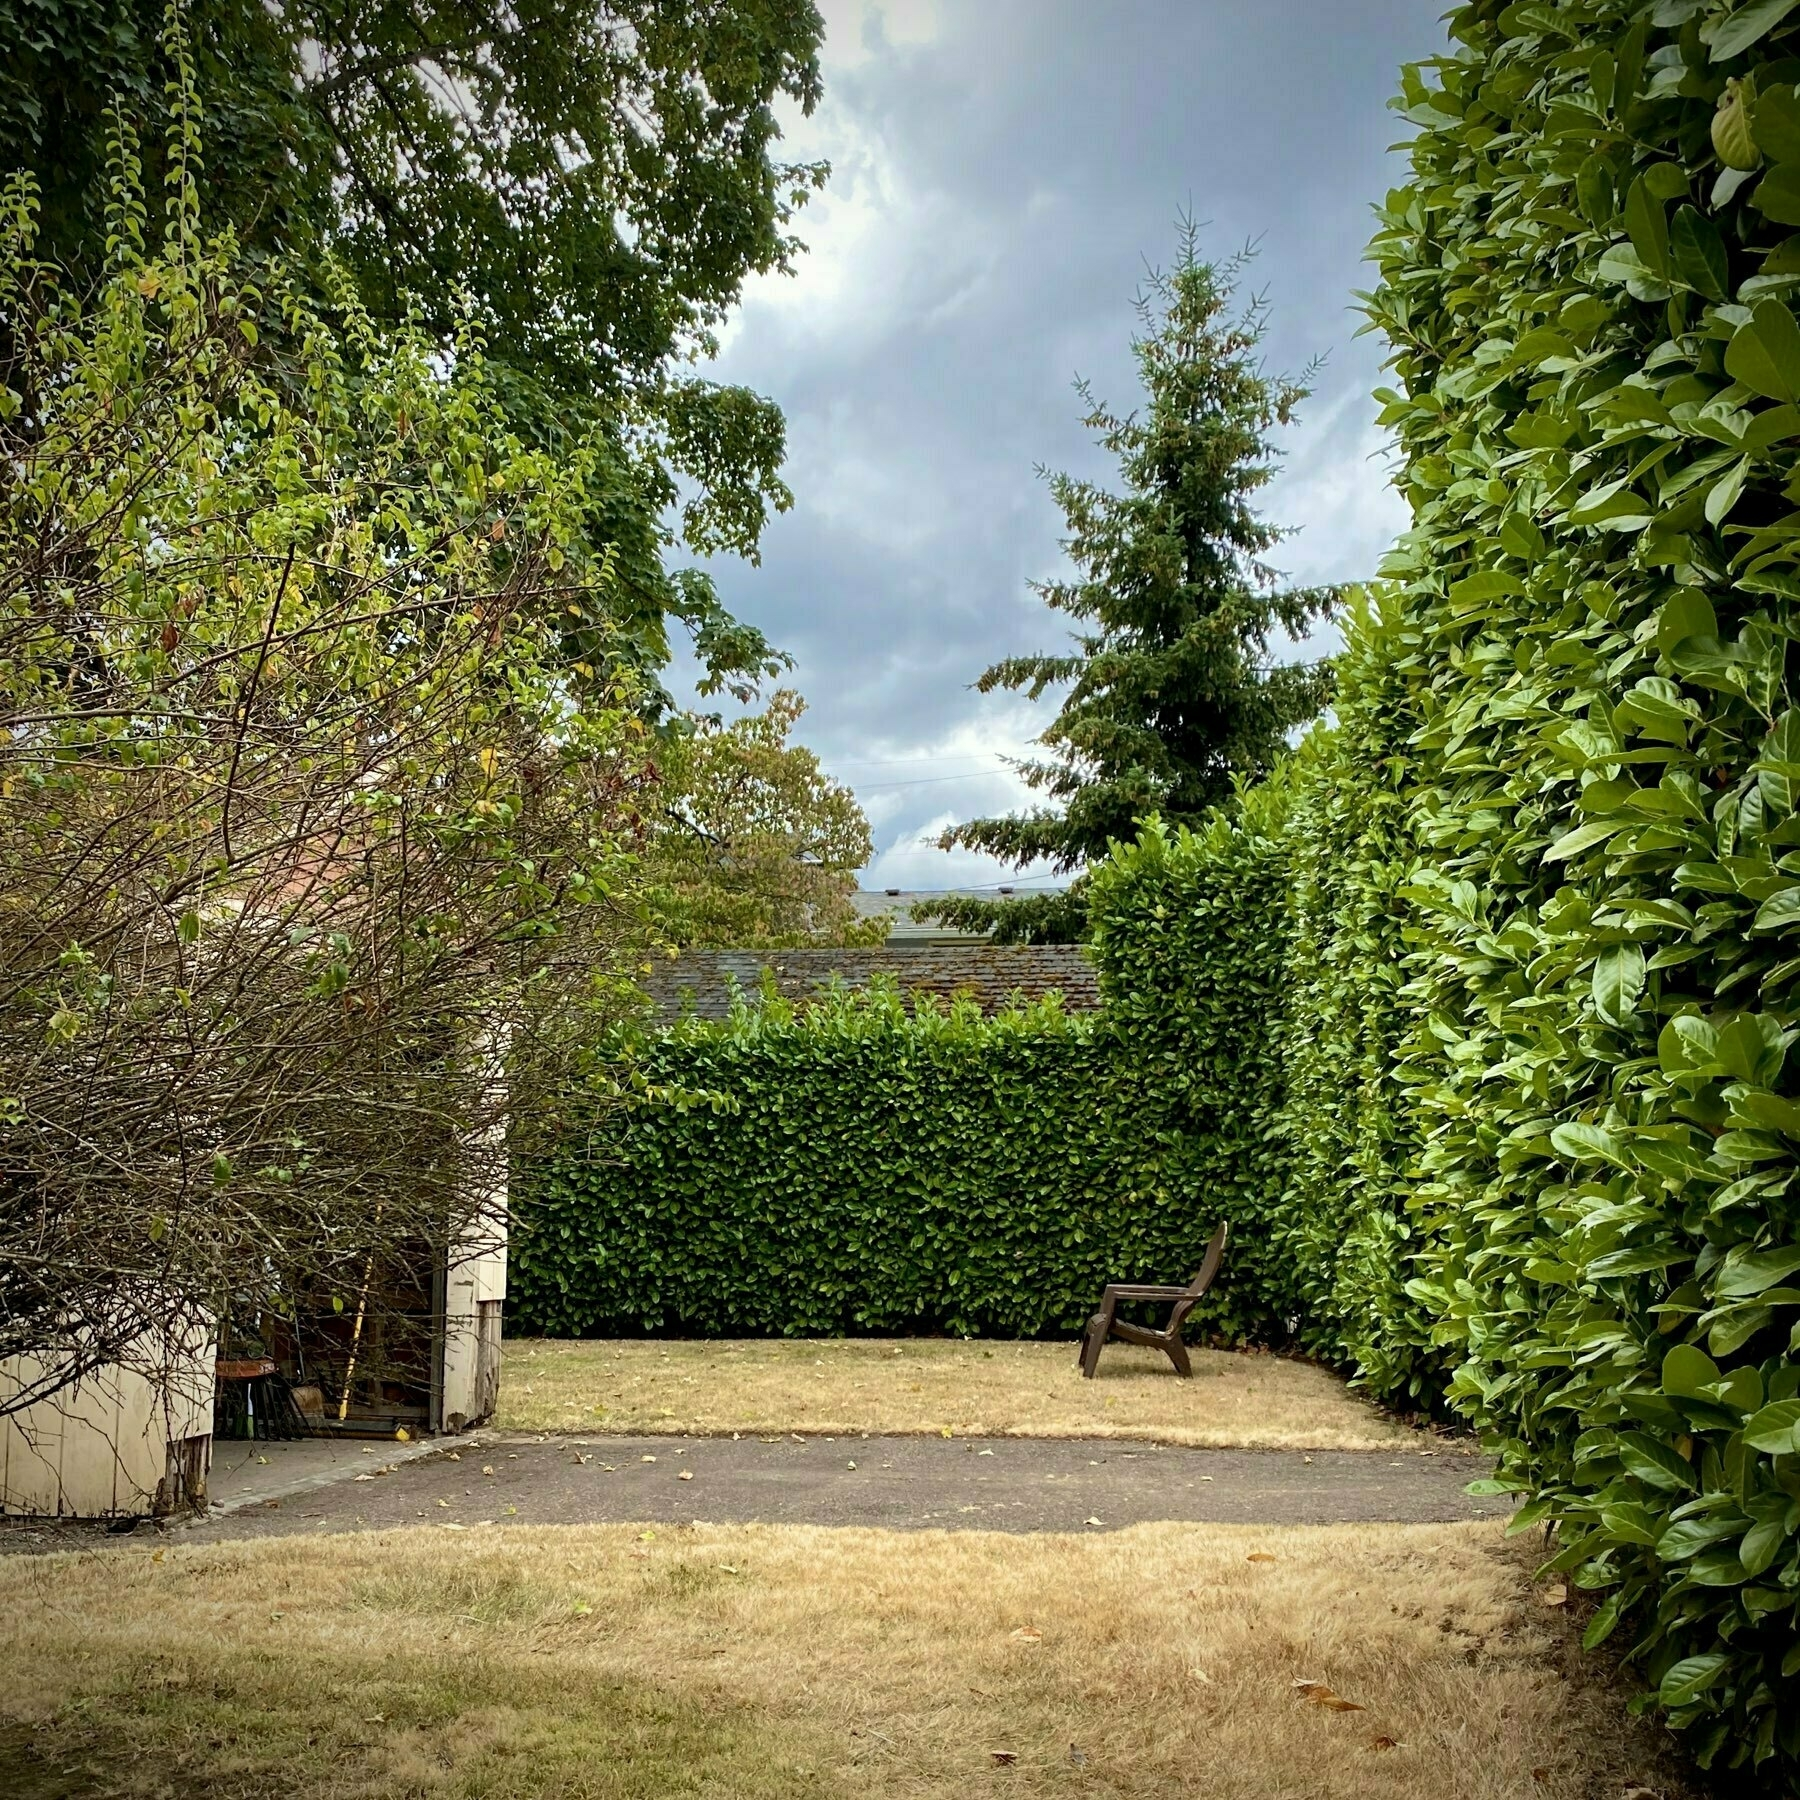 backyard view, trees and large hedge